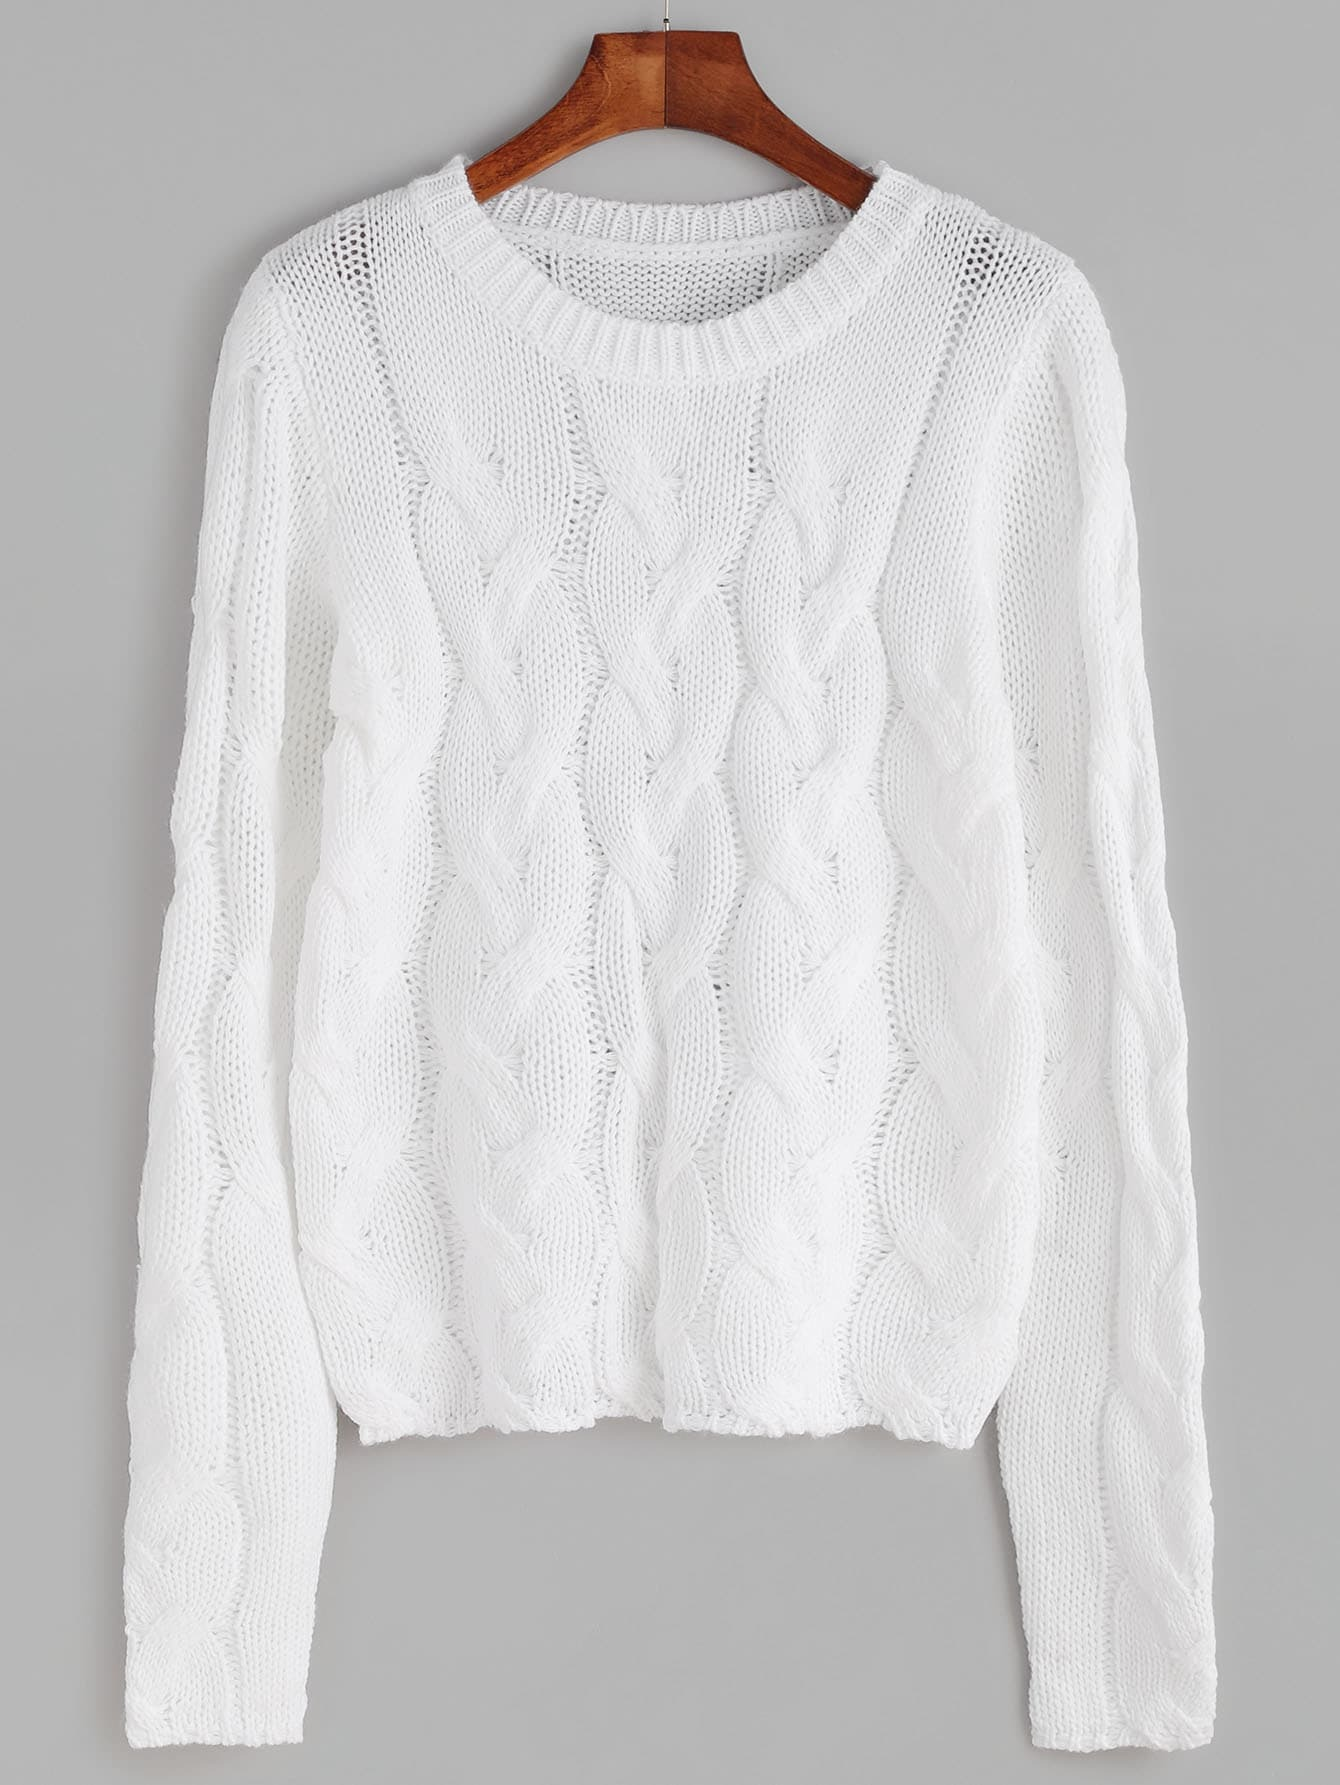 White Cable Knit Pullover Sweater Shein